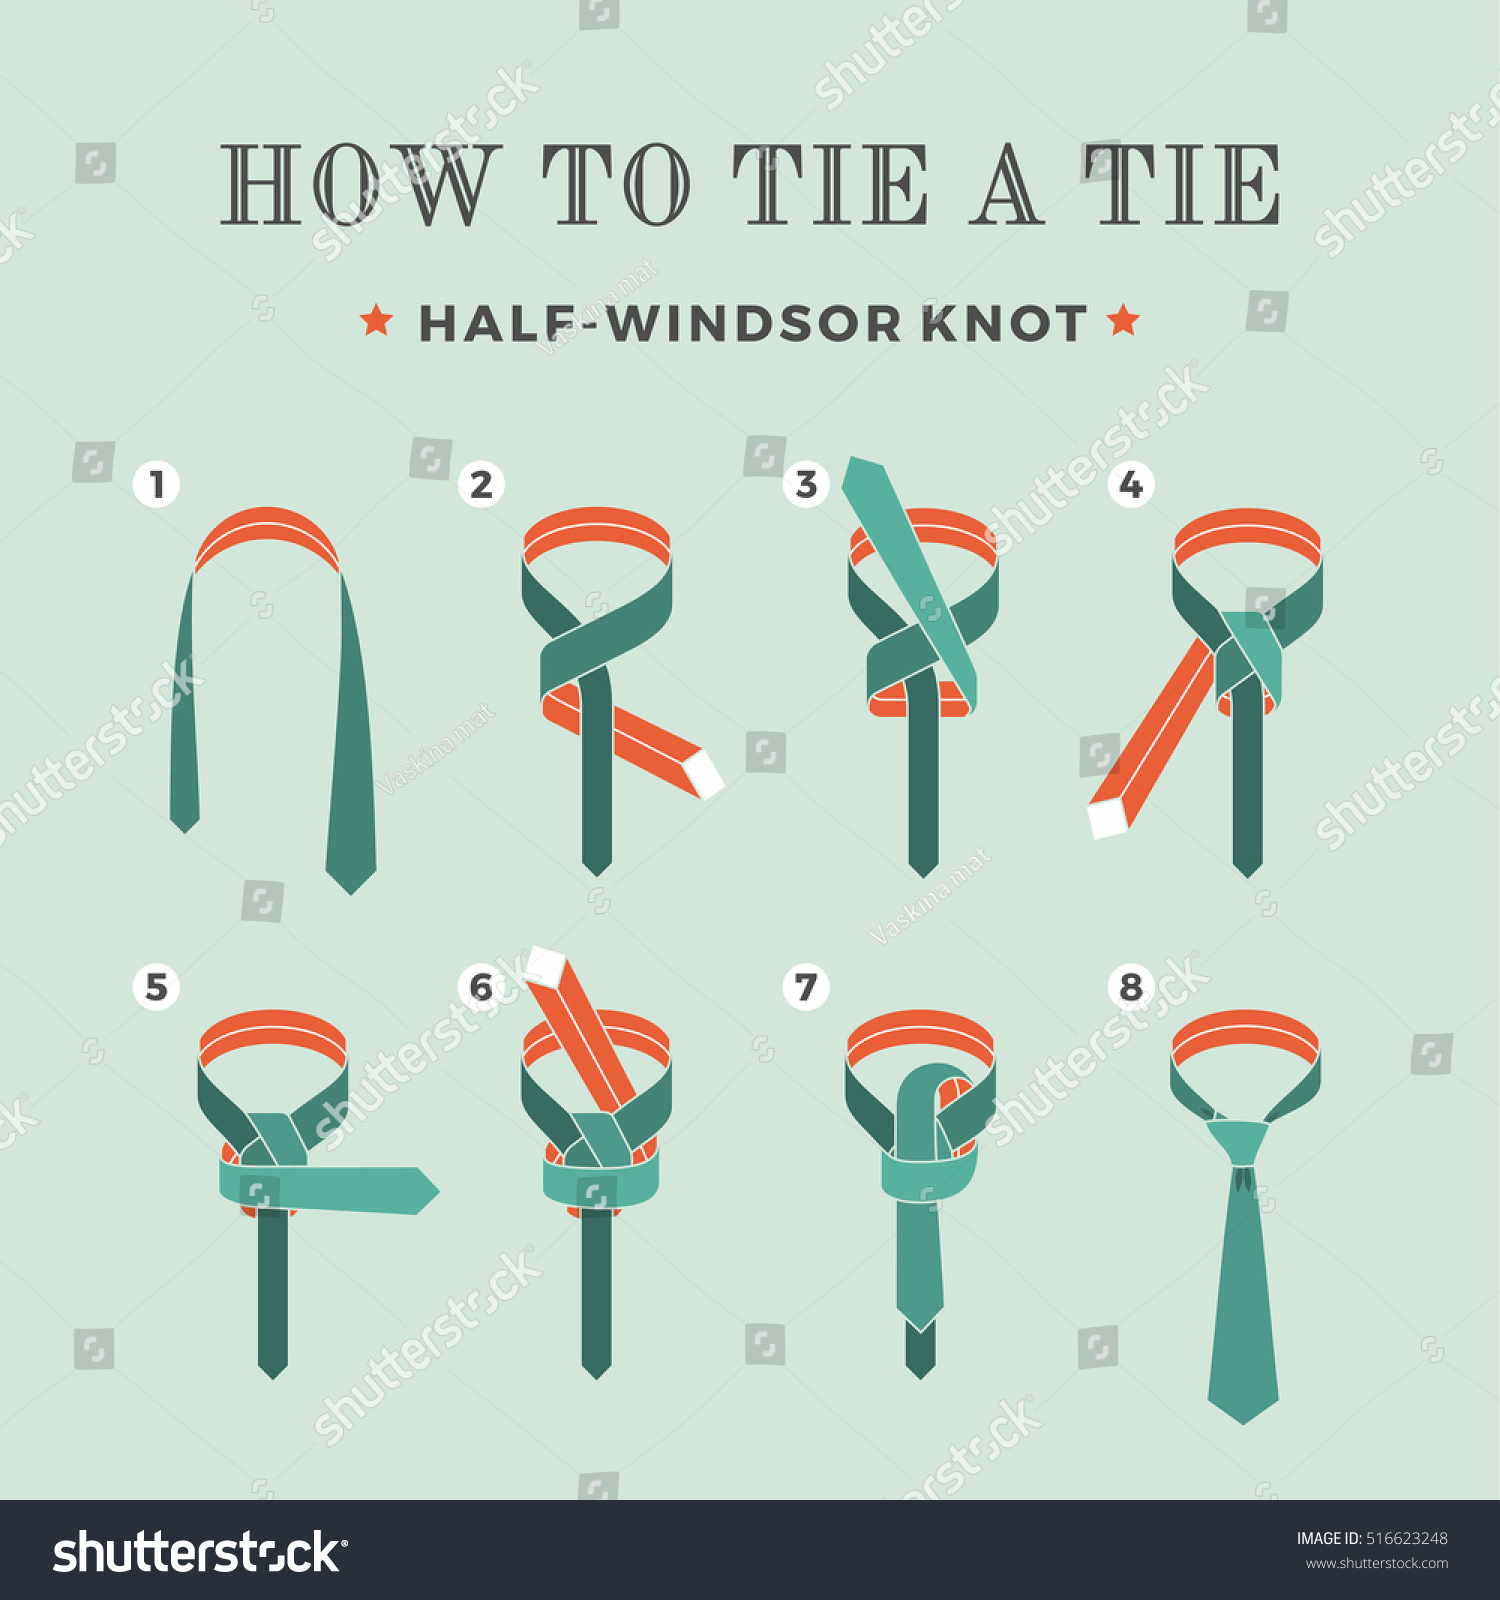 Diagram Of How To Tie A Windsor Knot New Era Wiring Double Pictures 3 Instructions On Stock Vector 516623248 Half Step By